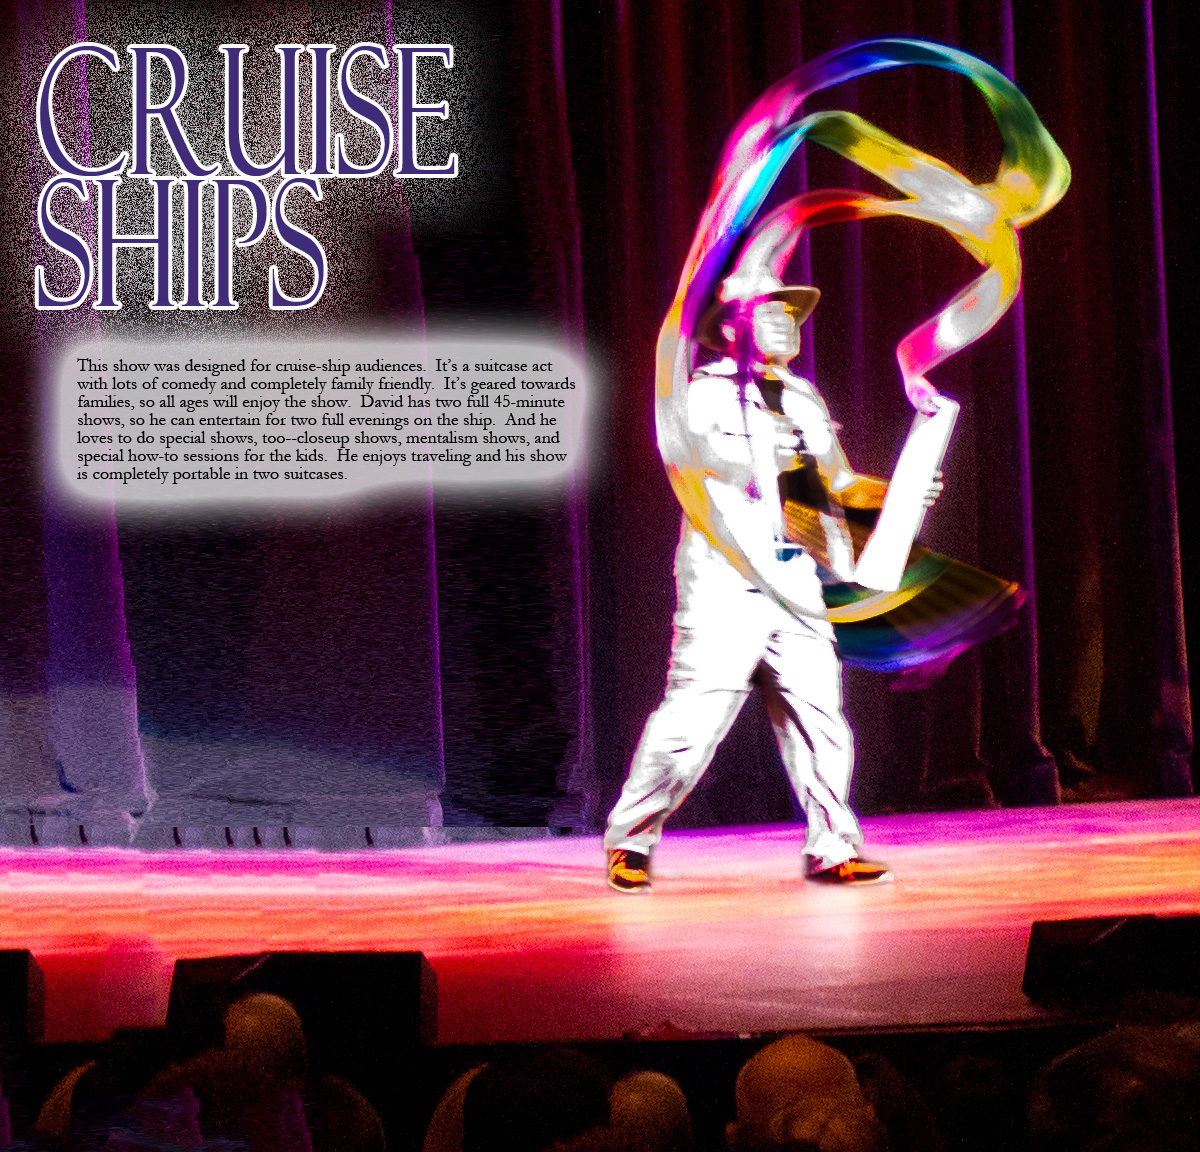 This show was designed for cruise-ship audiences.  It's a suitcase act with lots of comedy and completely family friendly.  It's geared towards families, so all ages will enjoy the show.  David has two full 45-minute shows, so he can entertain for two full evenings on the ship.  And he loves to do special shows, too--closeup shows, mentalism shows, and special how-to sessions for the kids.  He enjoys traveling and his show is completely portable in two suitcases.